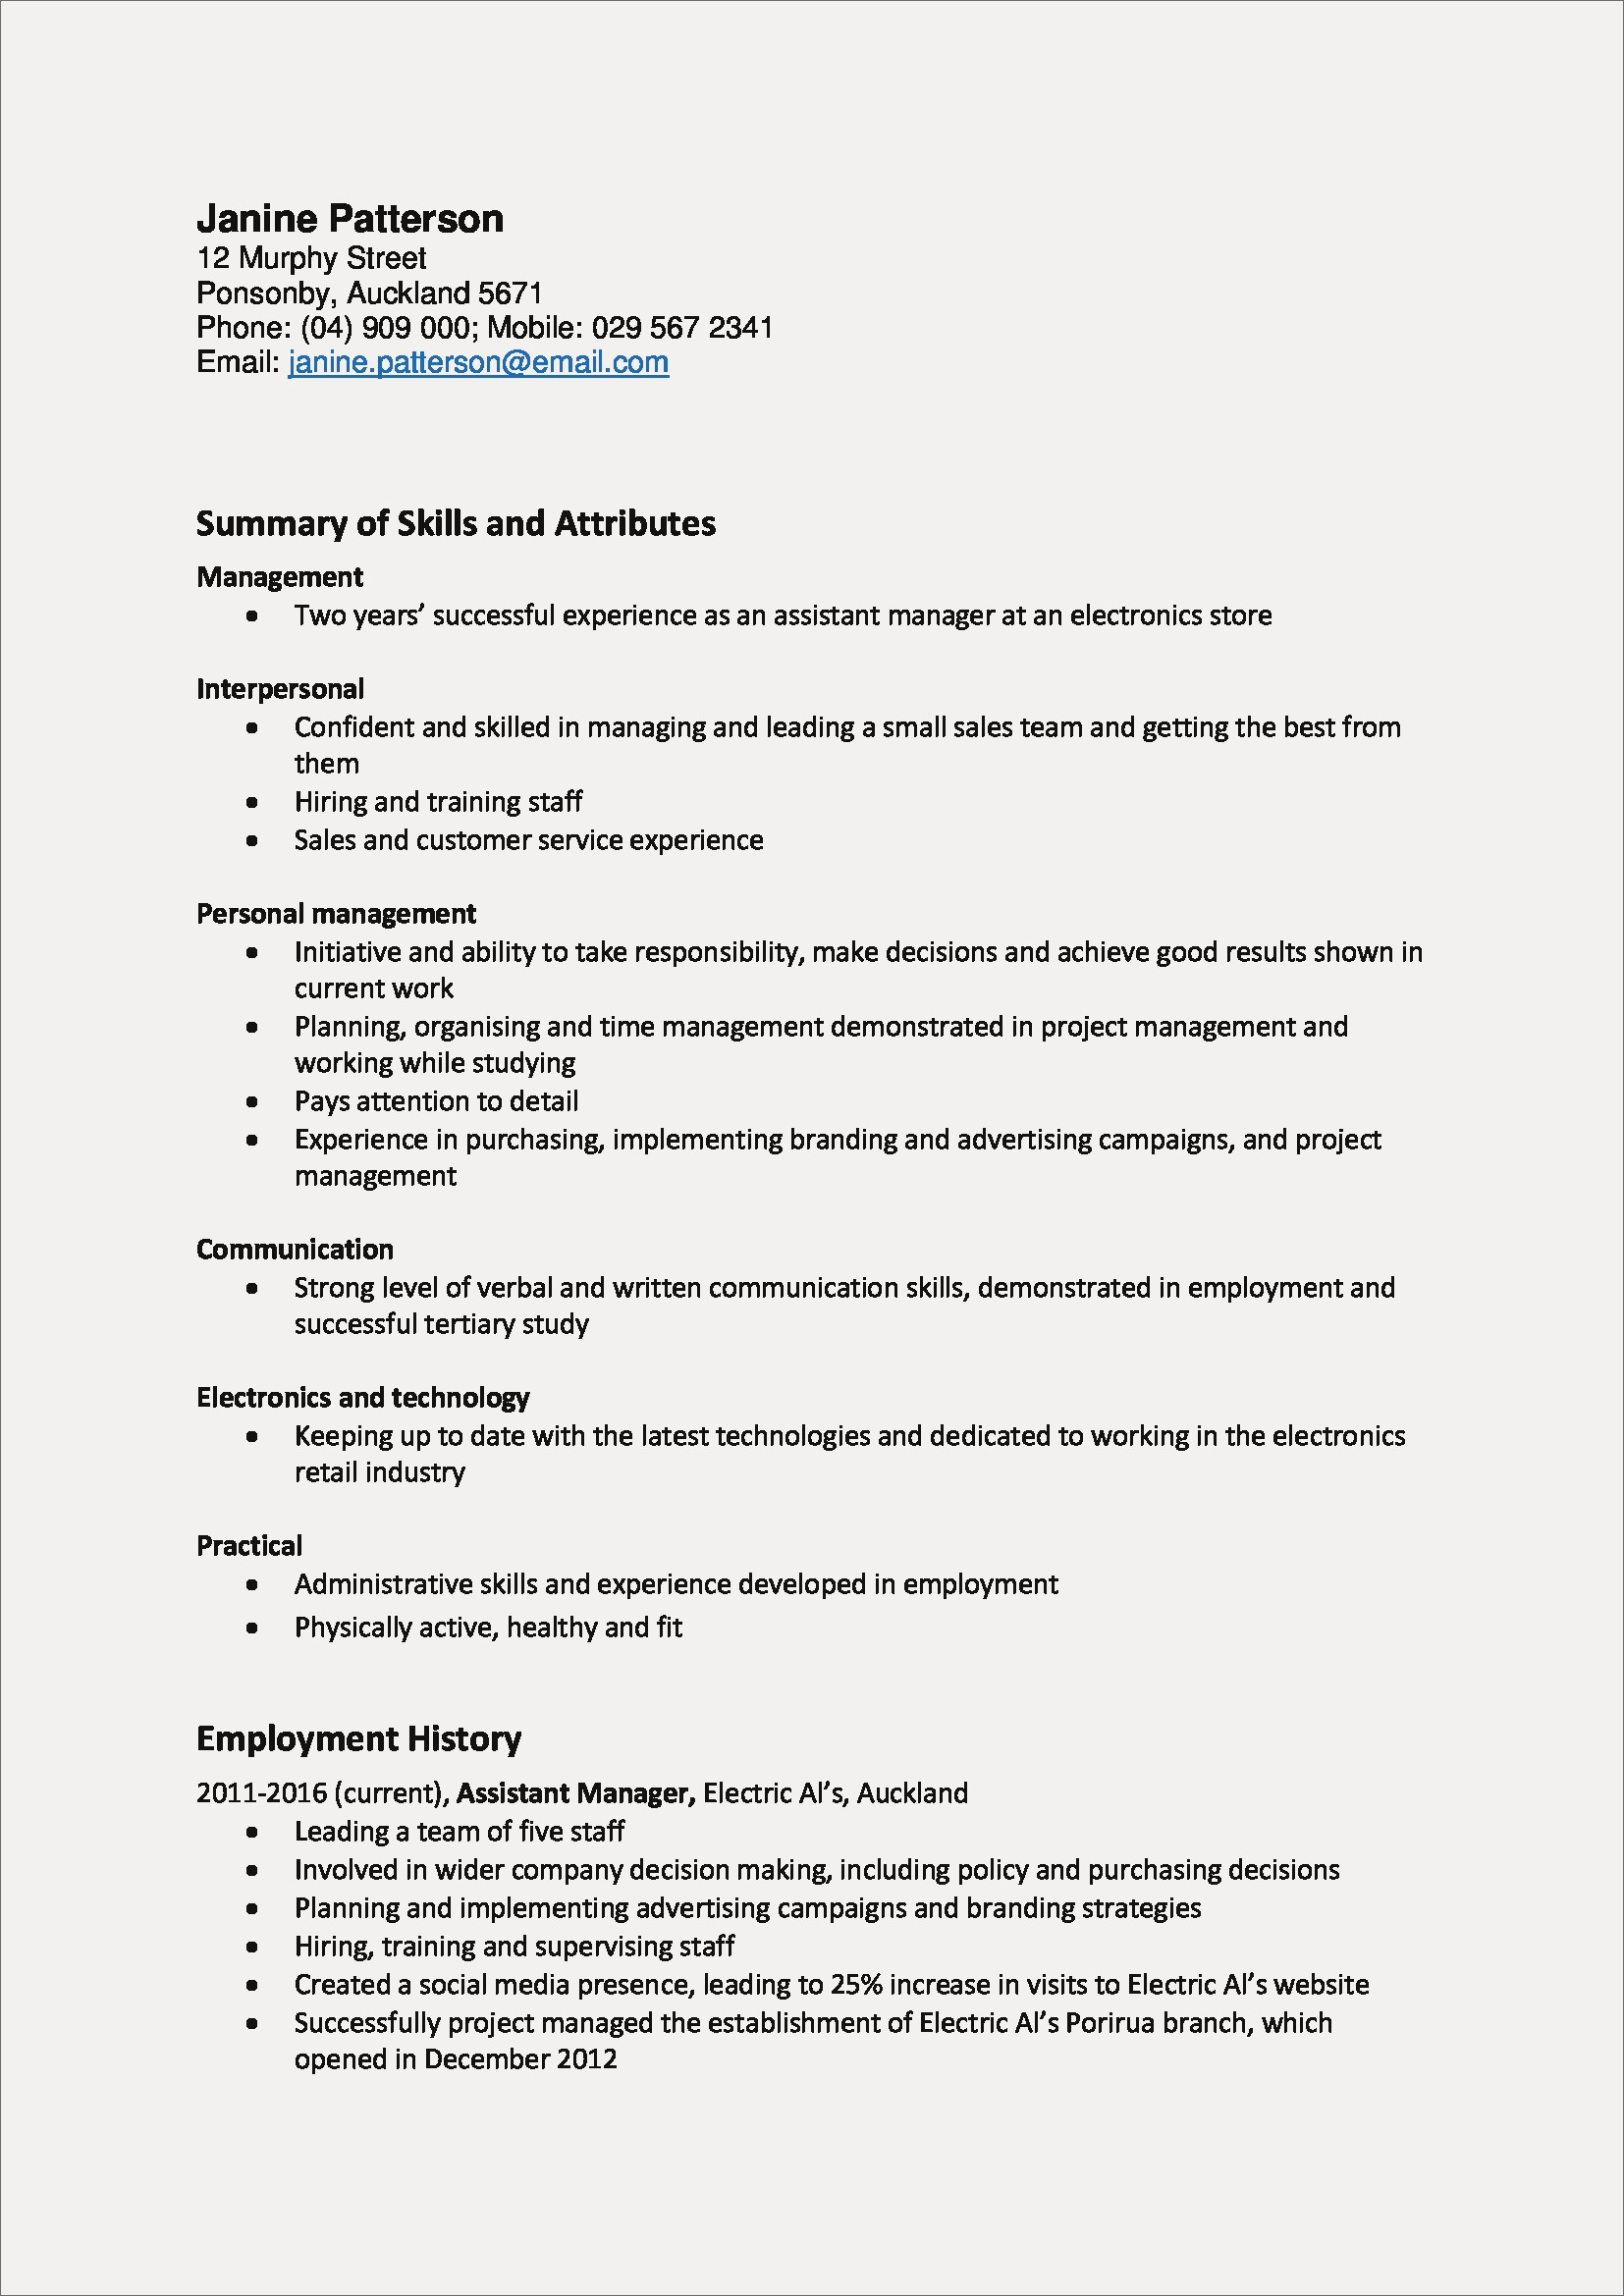 Resume Leadership Skills - Skill Examples for Resume New New Skills for A Resume Fishing Resume